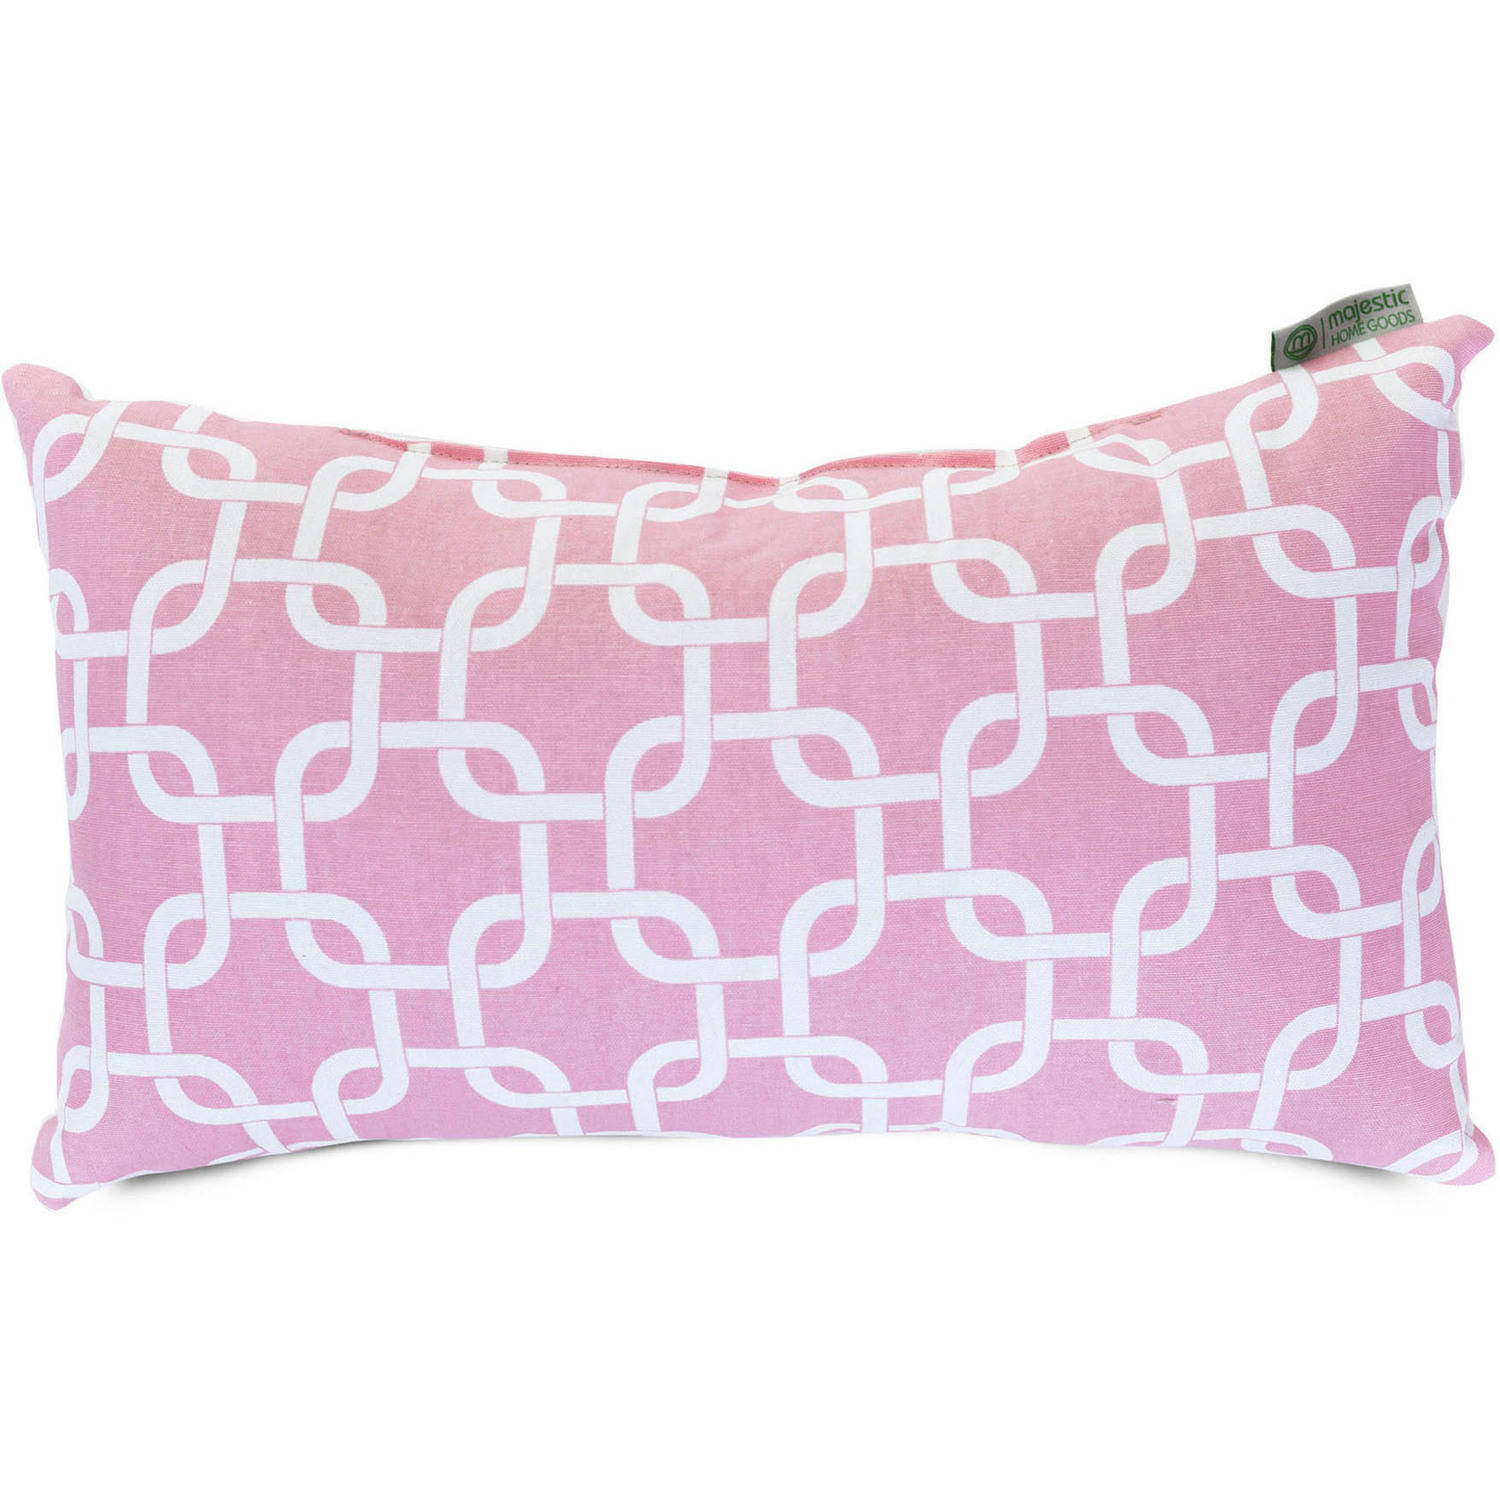 "Majestic Home Goods Links Small Decorative Pillow, 12"" x 20"""